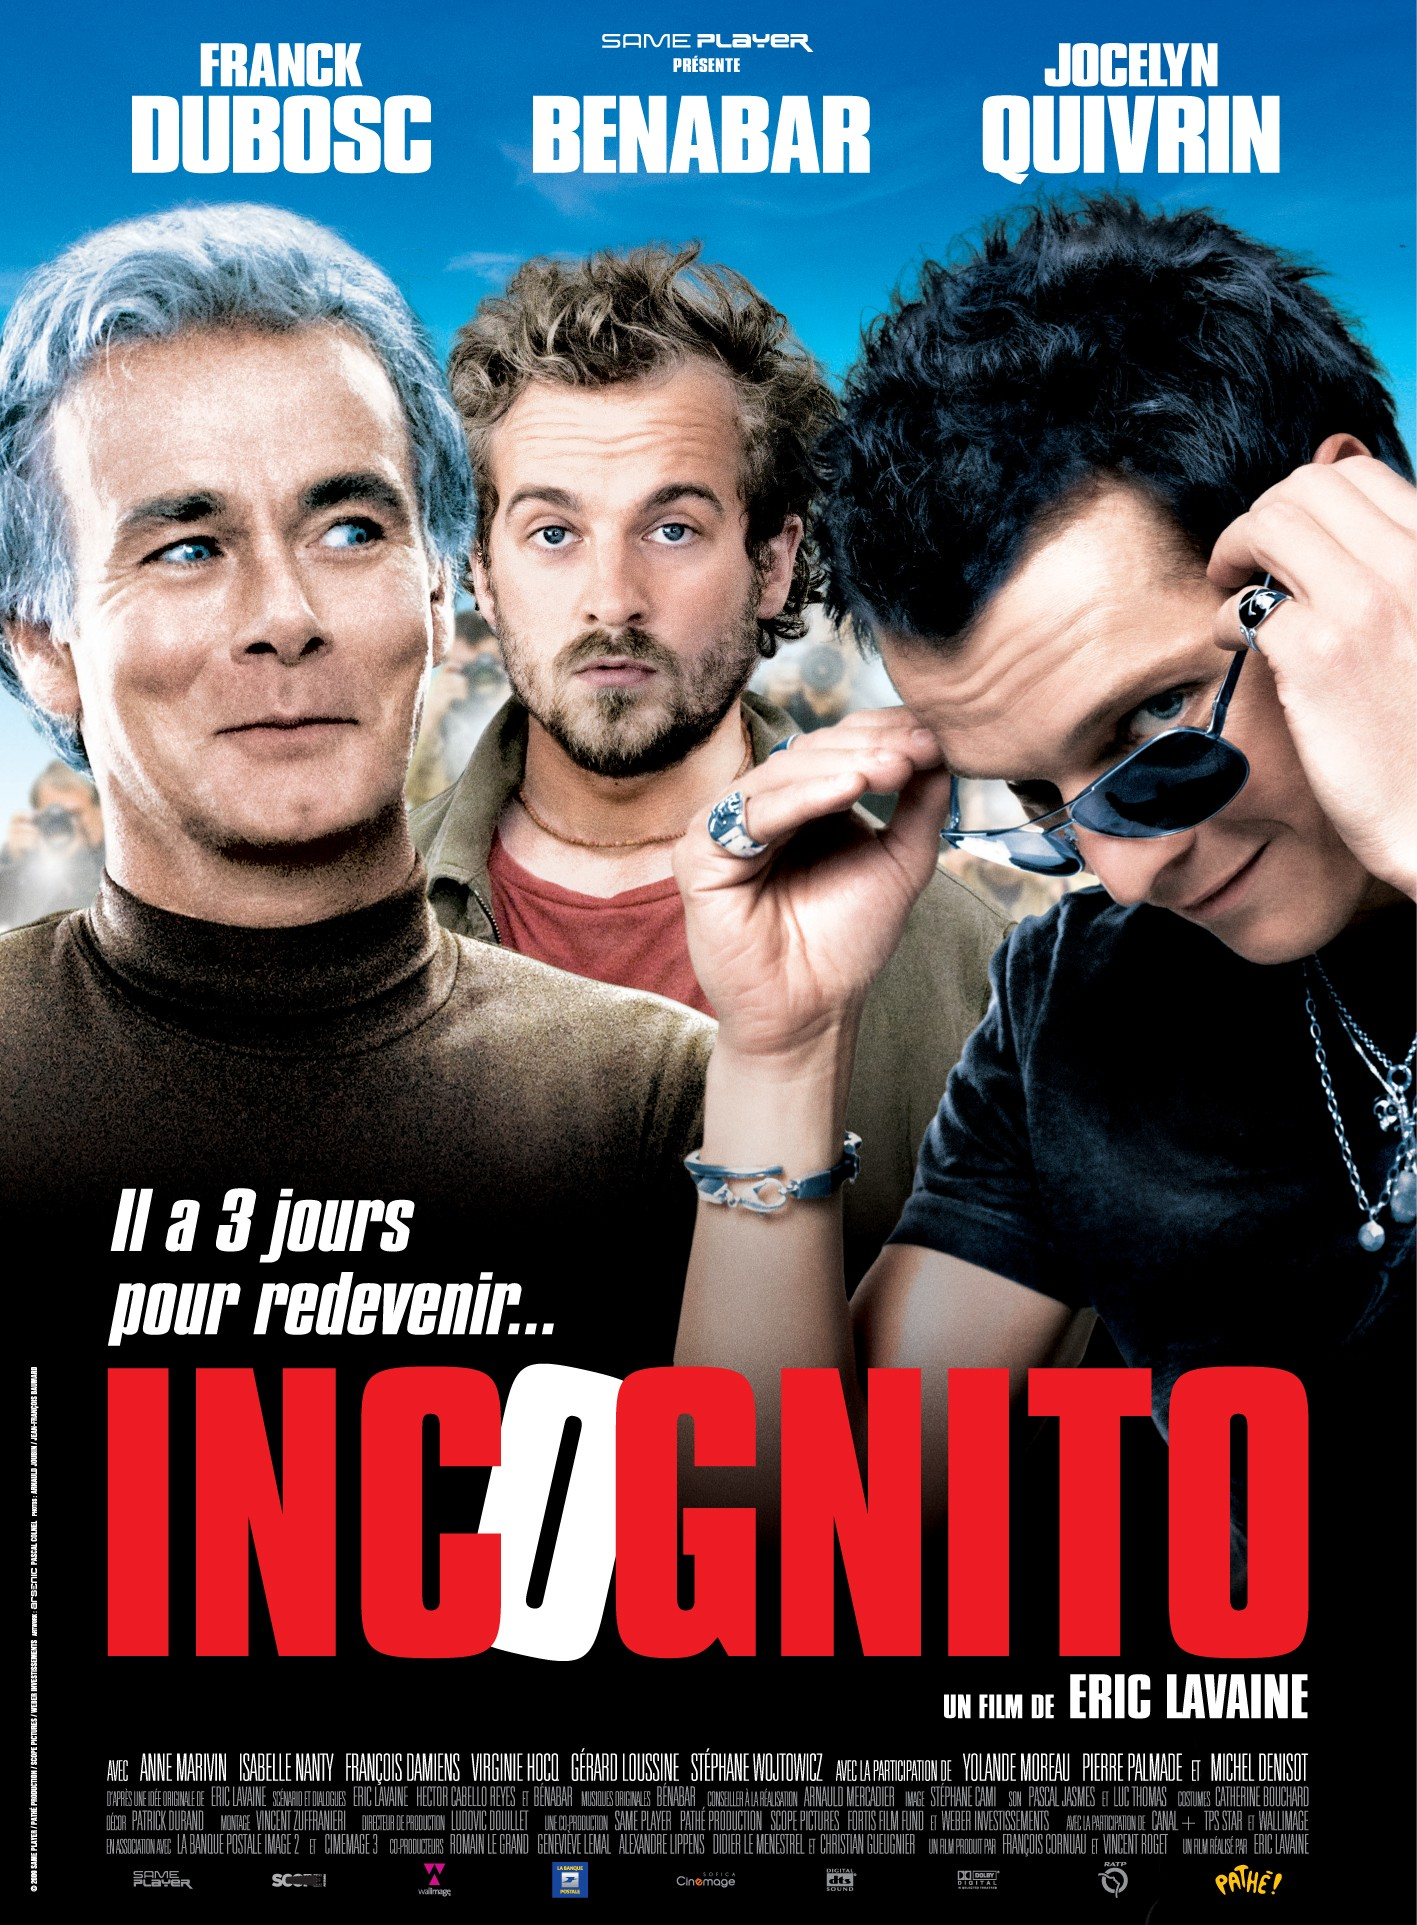 Incognito  | DVDRiP | FRENCH | UL | DF